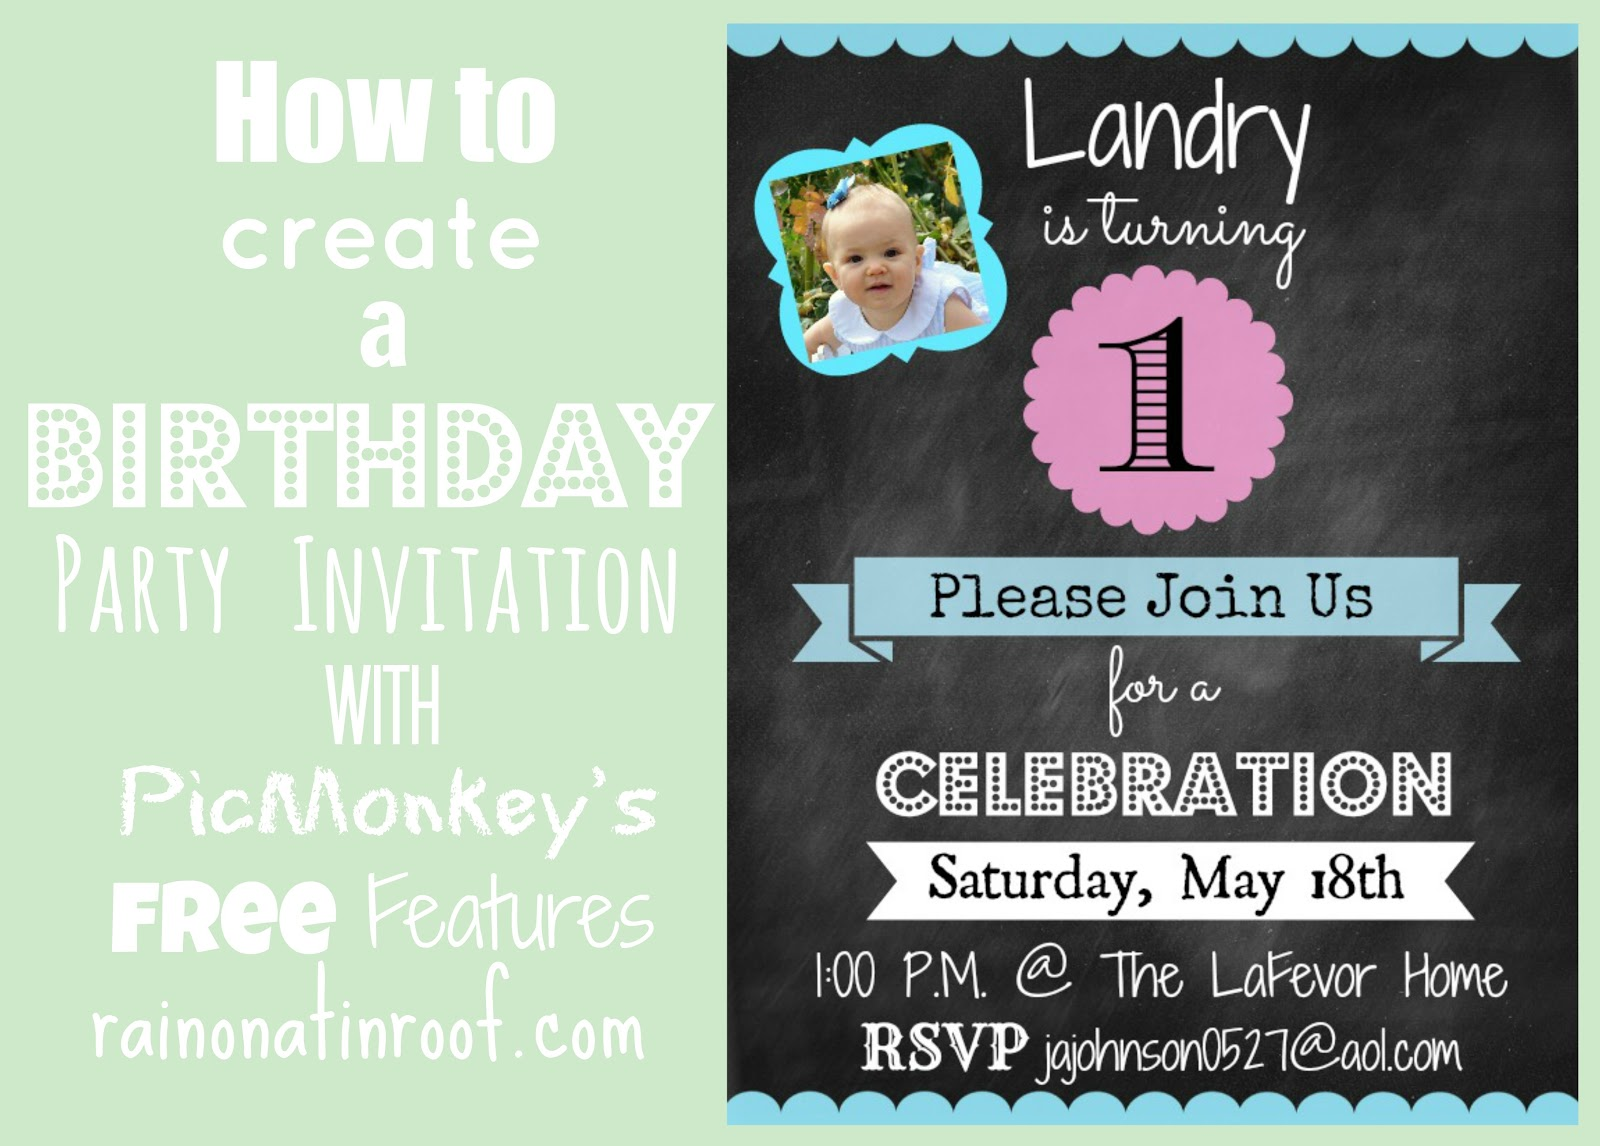 How to create an invitation in picmonkey how to create an invitation in picmonkey rainonatinroof invitation party stopboris Choice Image